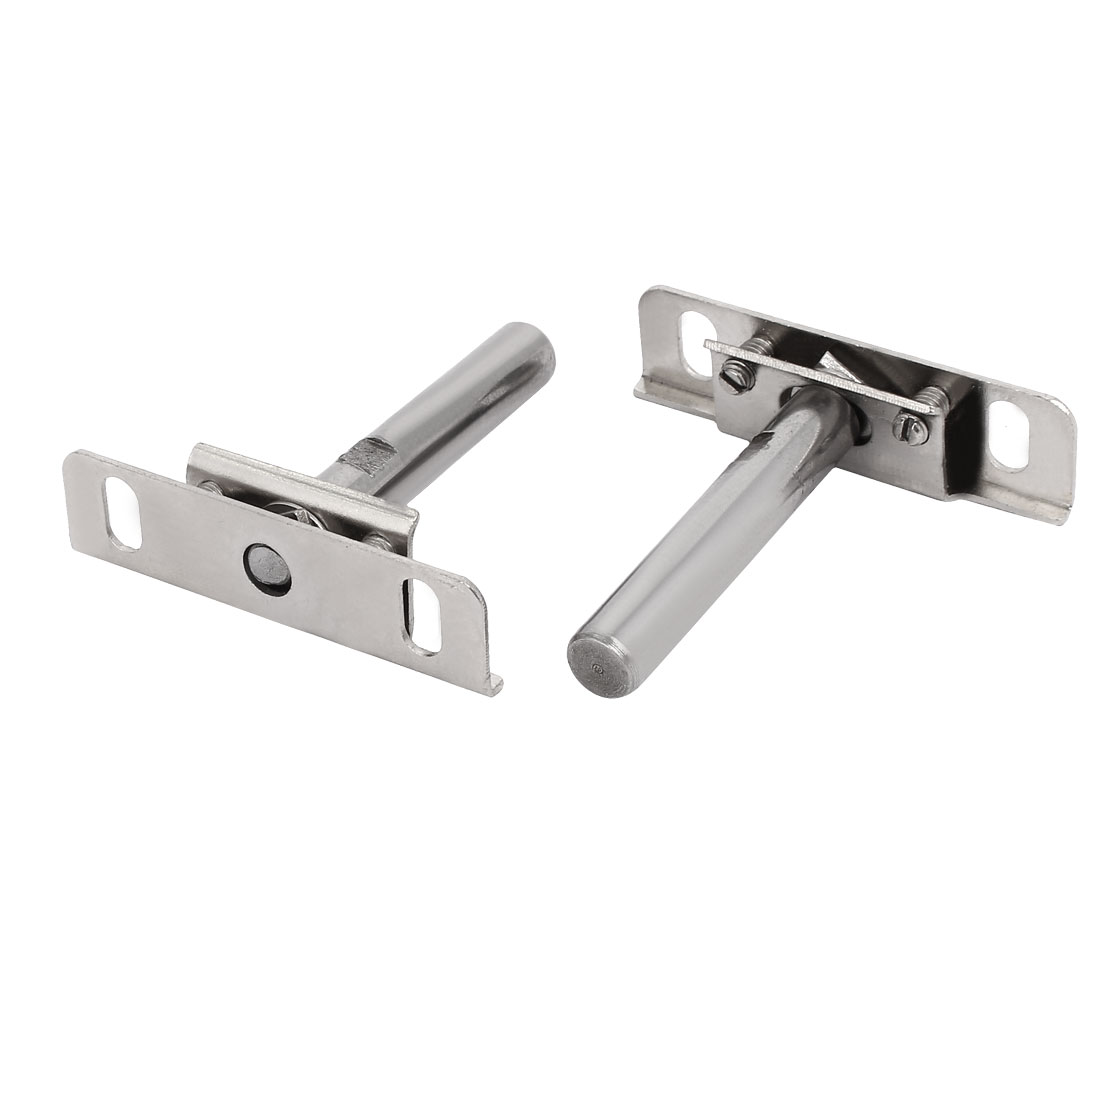 12mm x 70mm Metal Hidden Concealed Invisible Shelf Support Bracket 2pcs